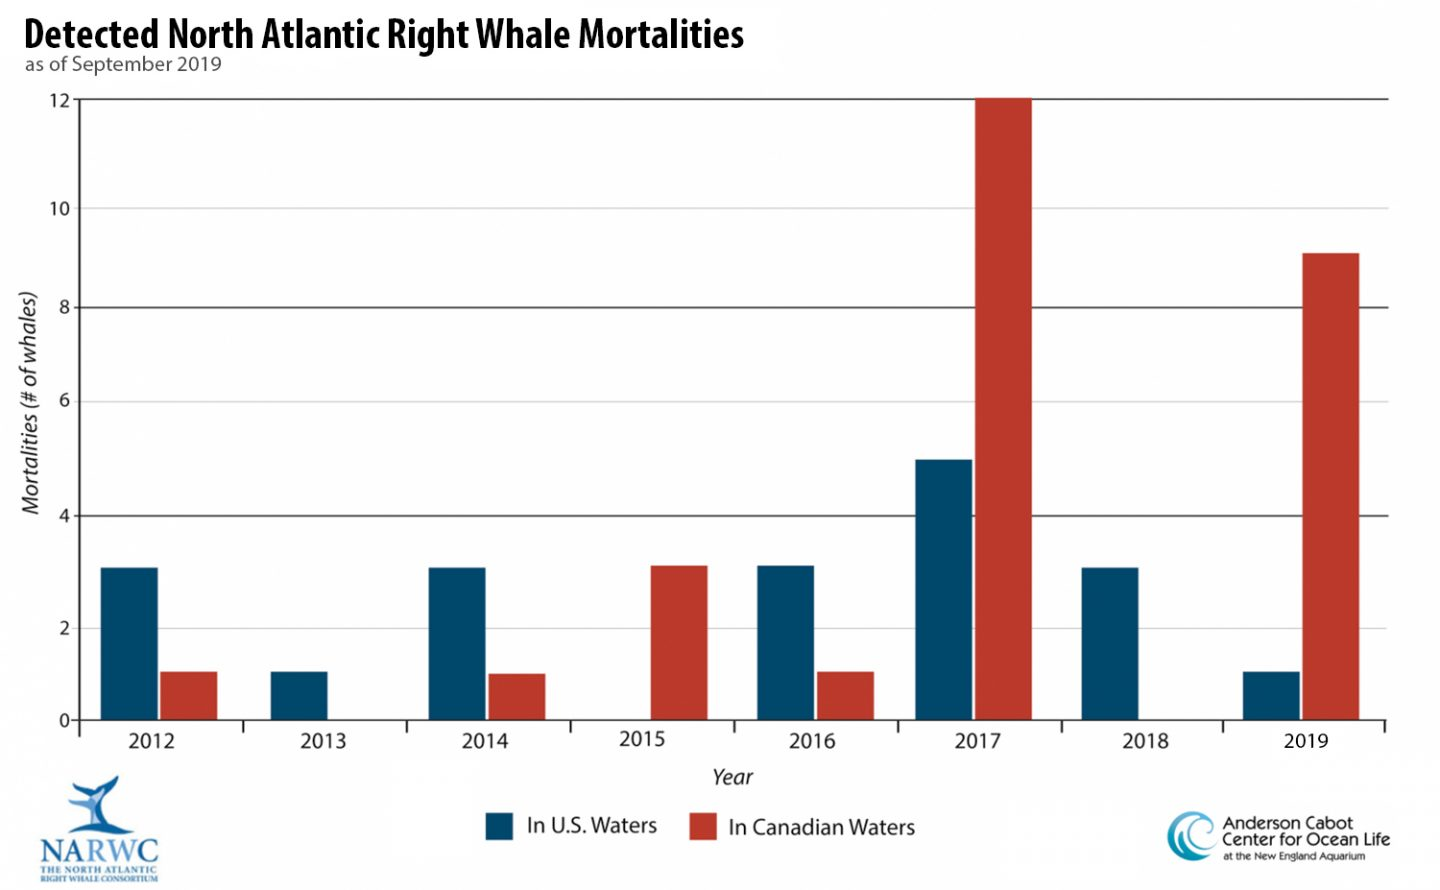 graph of detected North Atlantic right whale mortalities